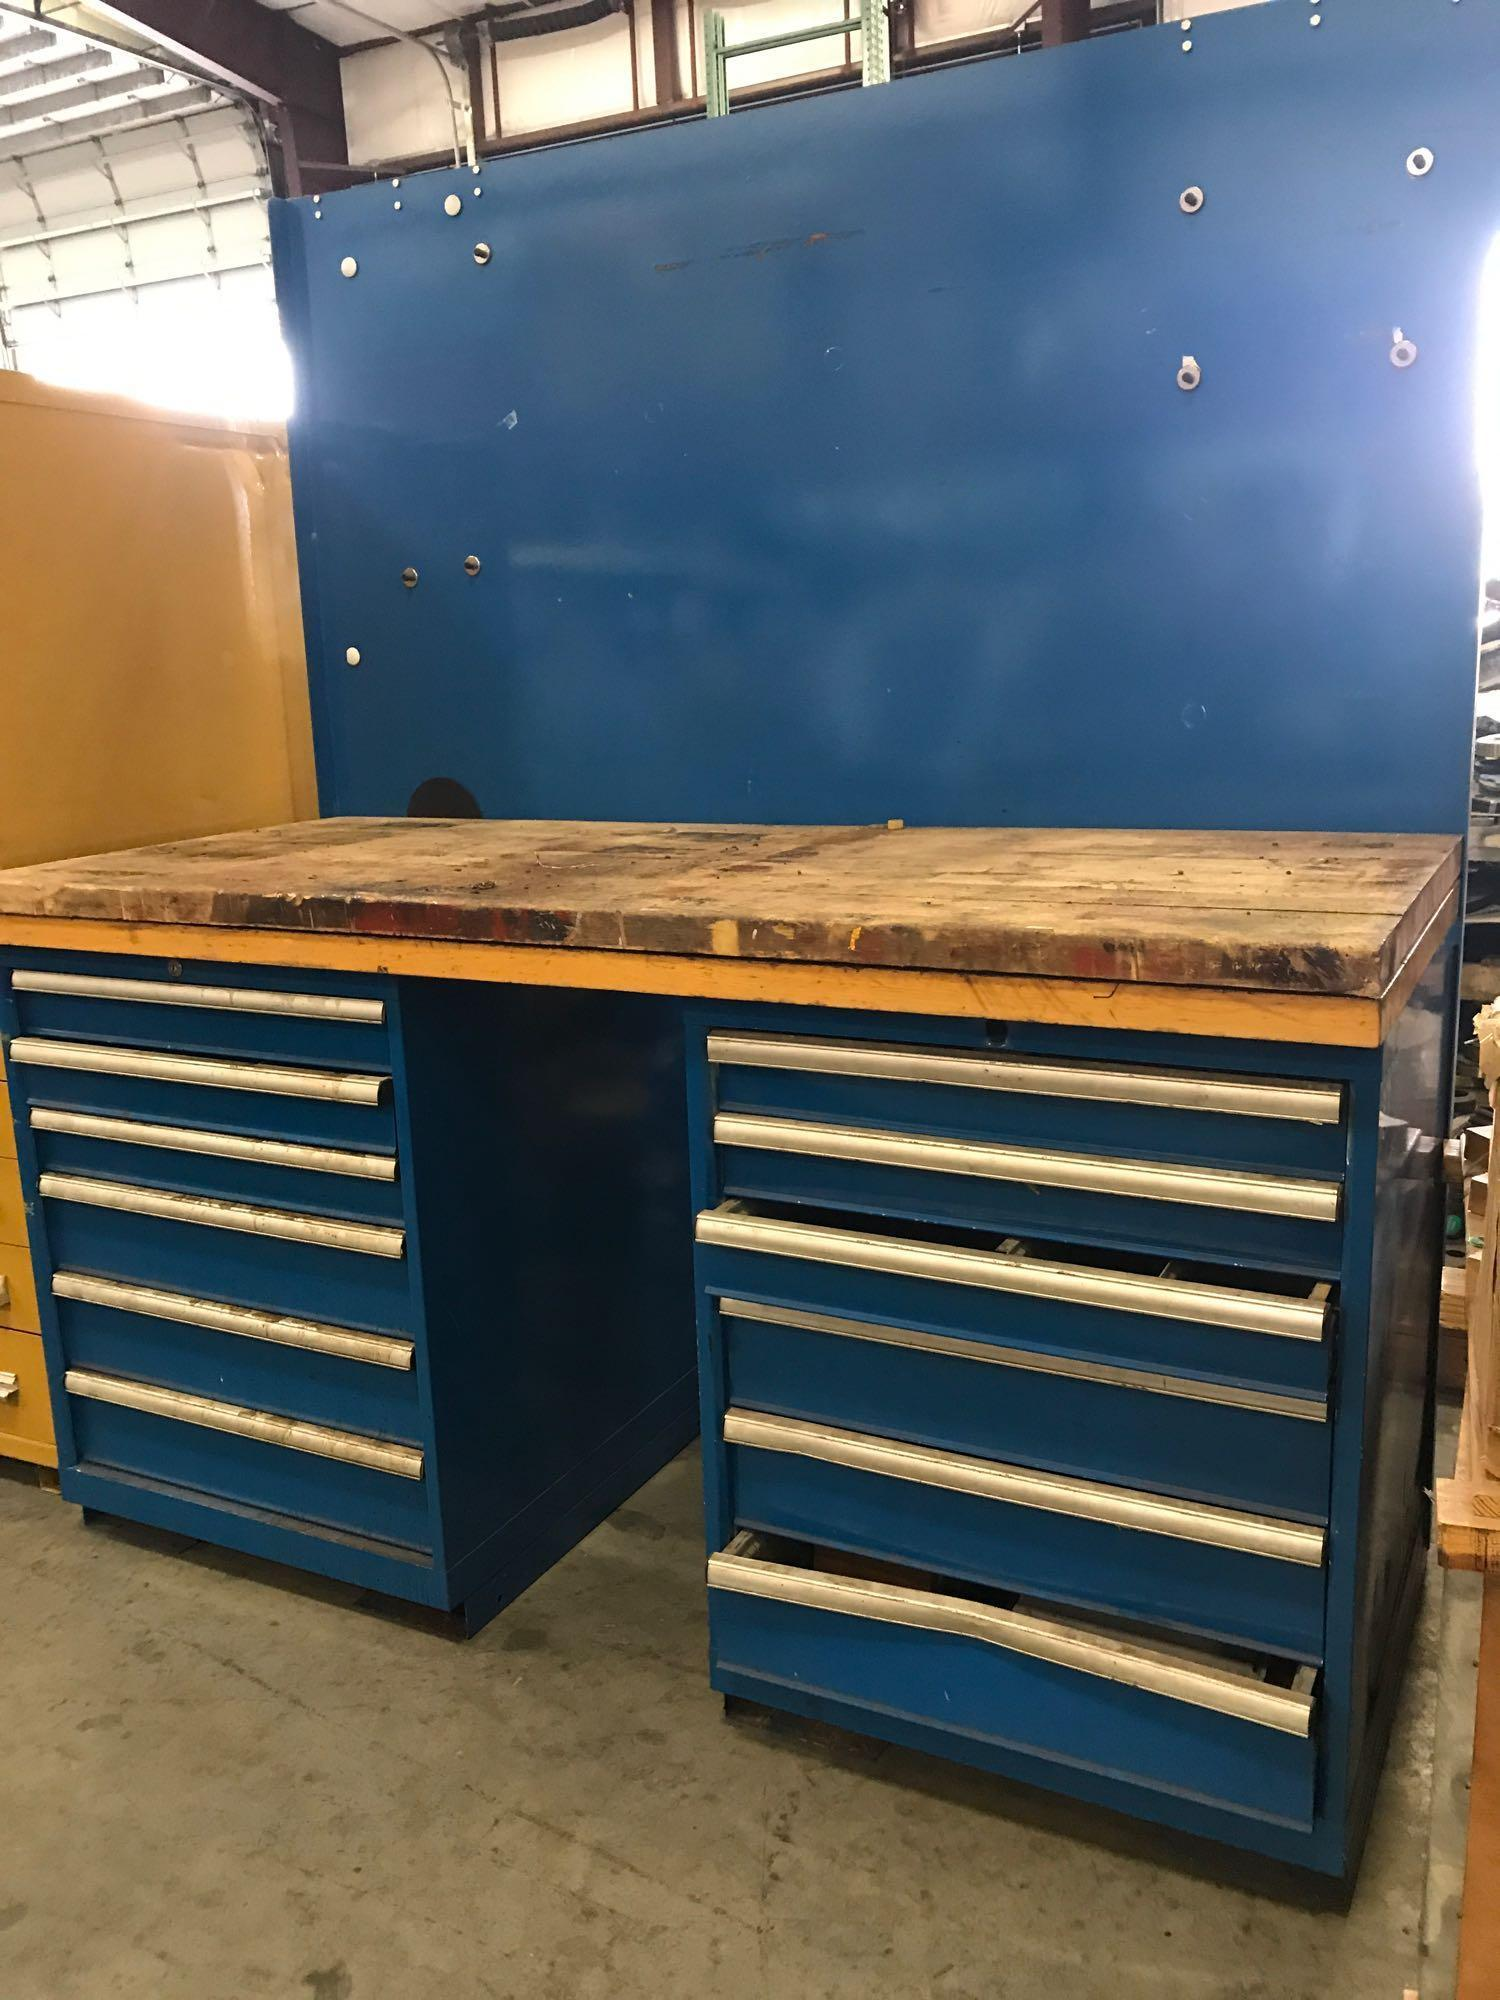 Lot 51 - 11 DRAWER INDUSTRIAL WORK BENCH